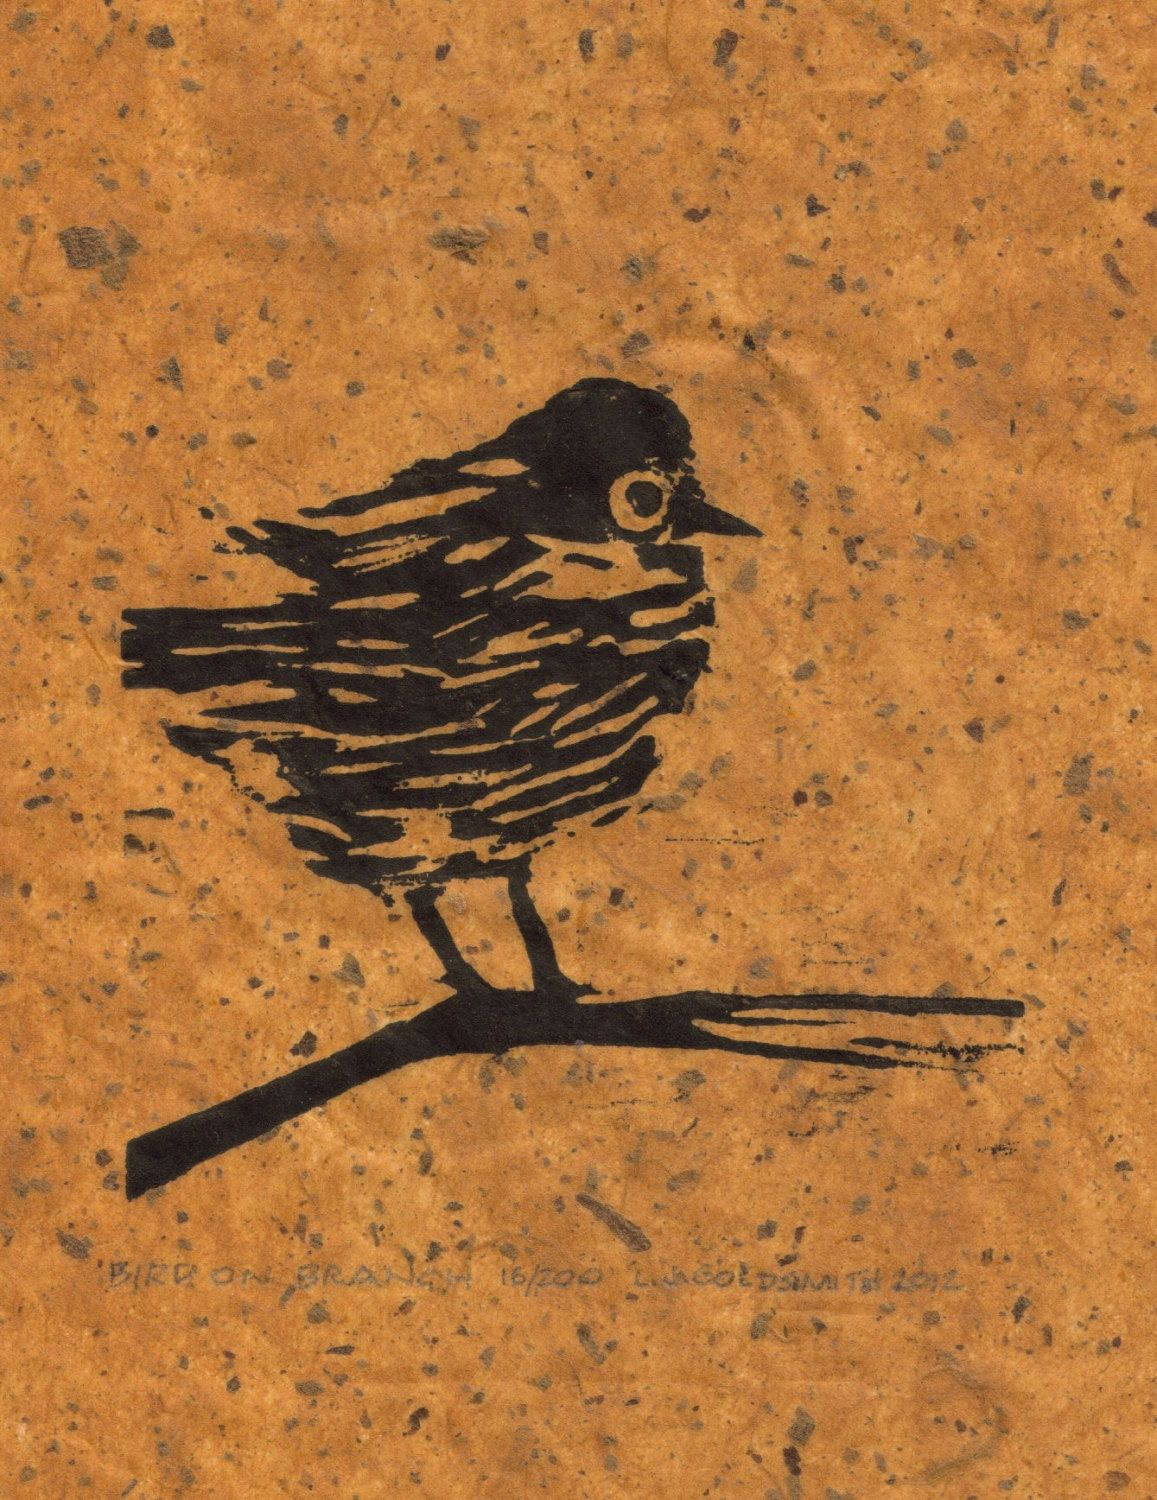 Bird on Branch Original Woodcut Print Limited Edition 18/200 Woodblock on Chiri Paper